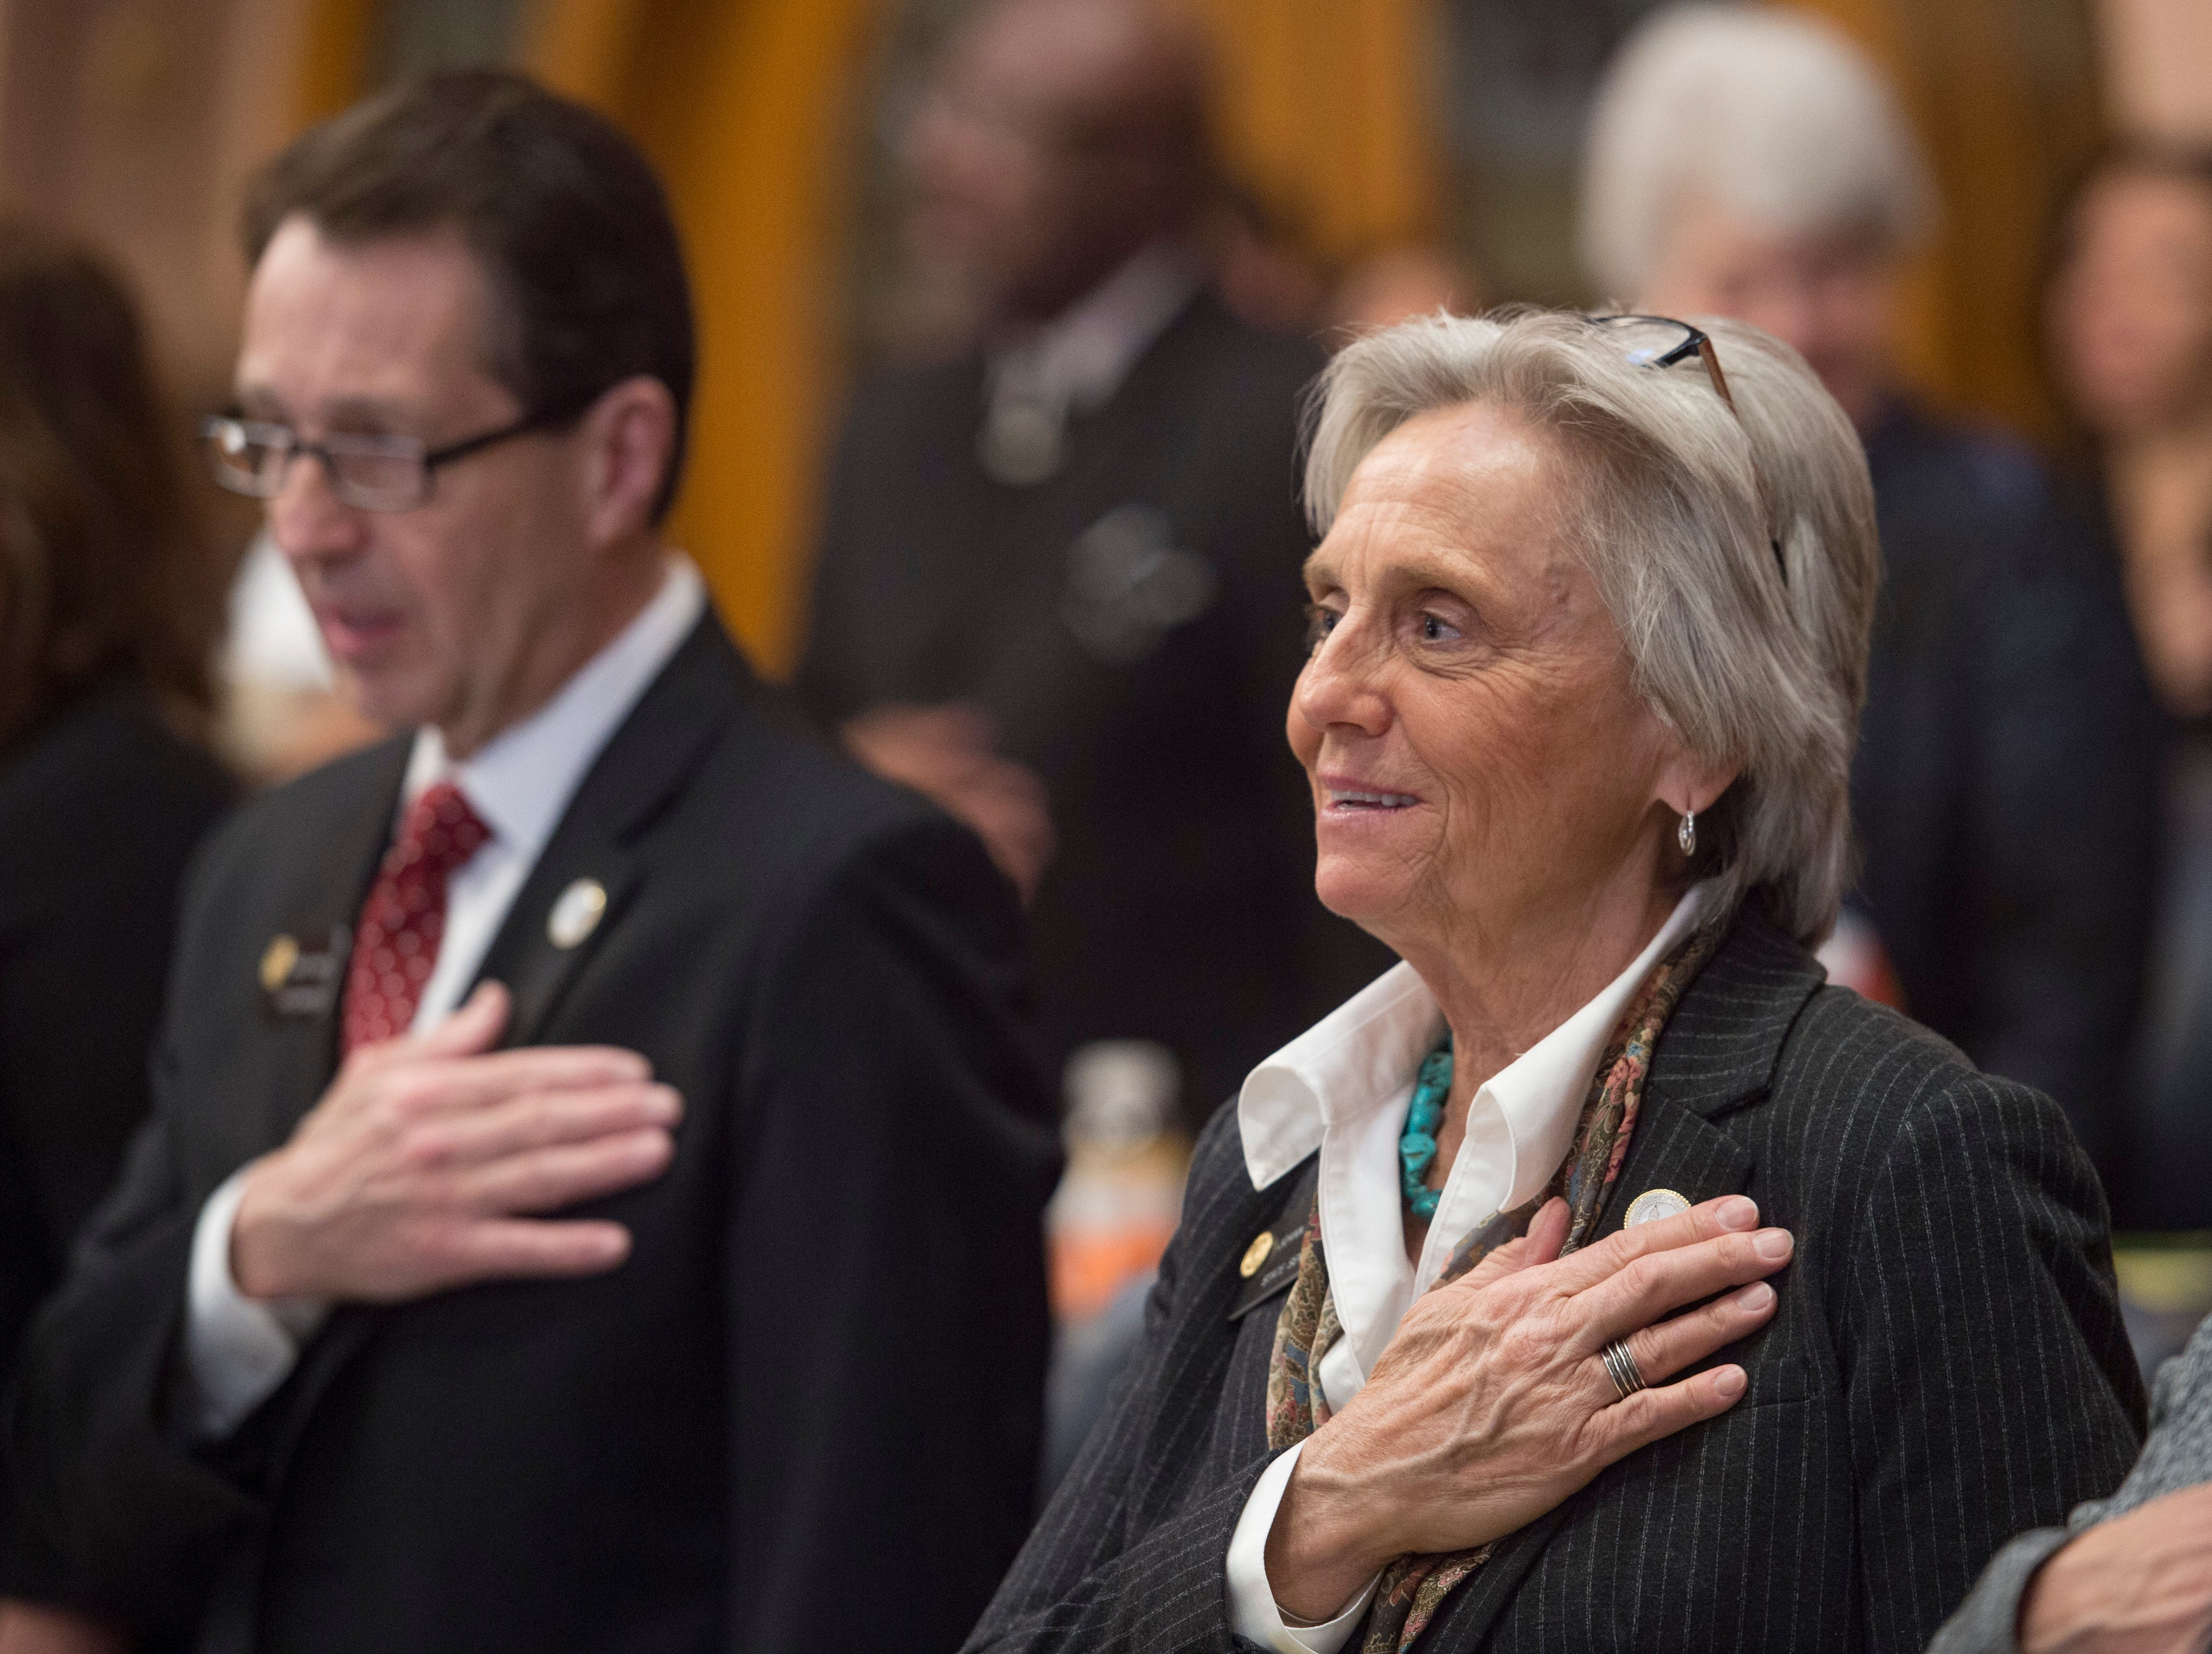 State Sen. Joann Ginal holds her hand over her heart during the National Anthem as the 72nd General Assembly convenes at the Colorado State Capitol on Friday, January 4, 2019.